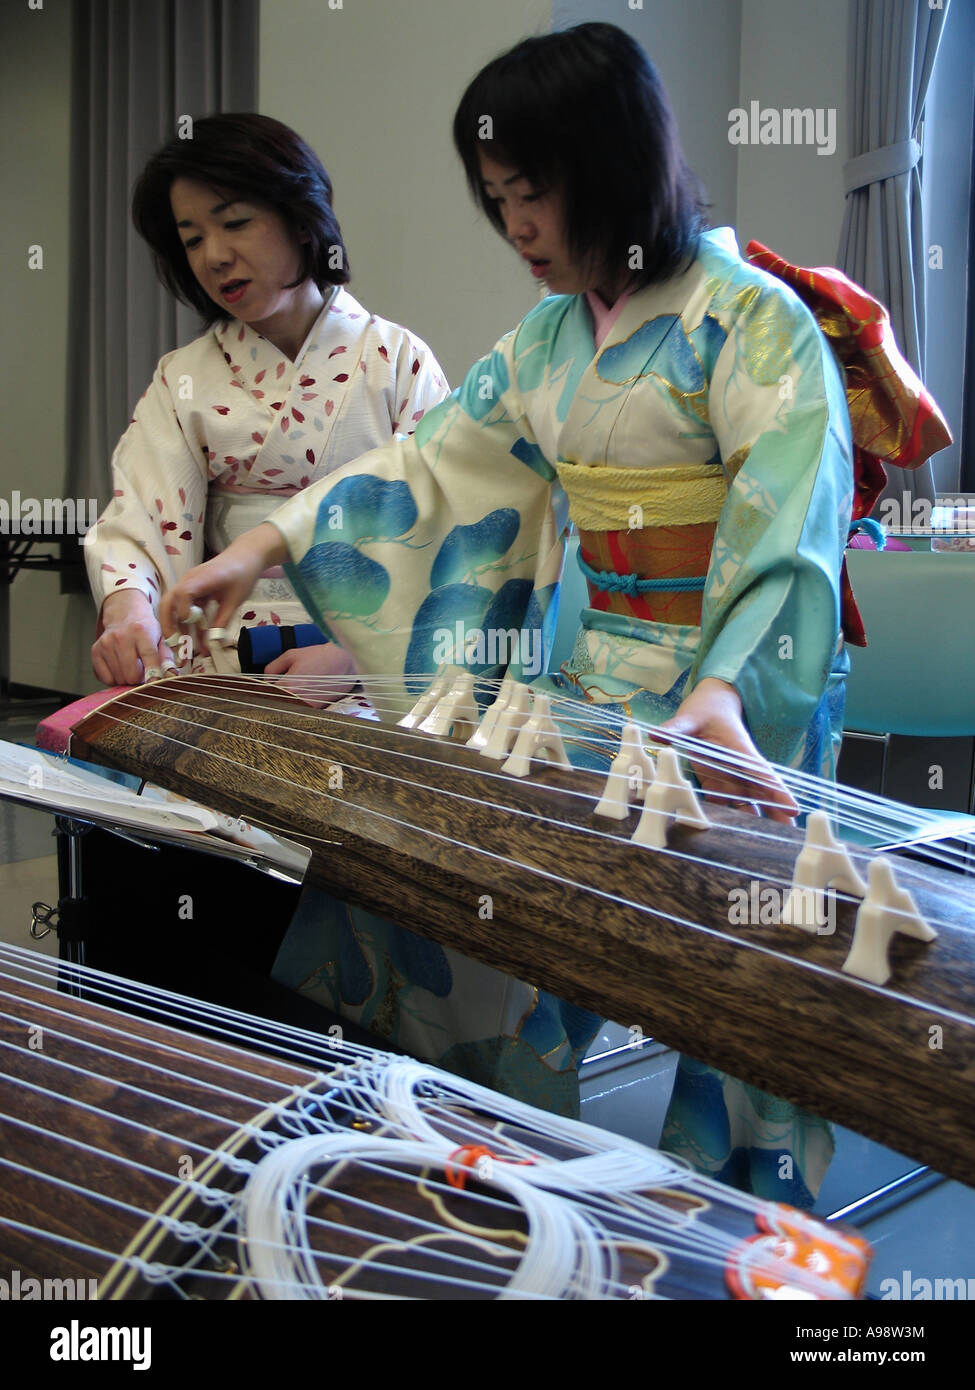 Japan women playing with them self foto 102